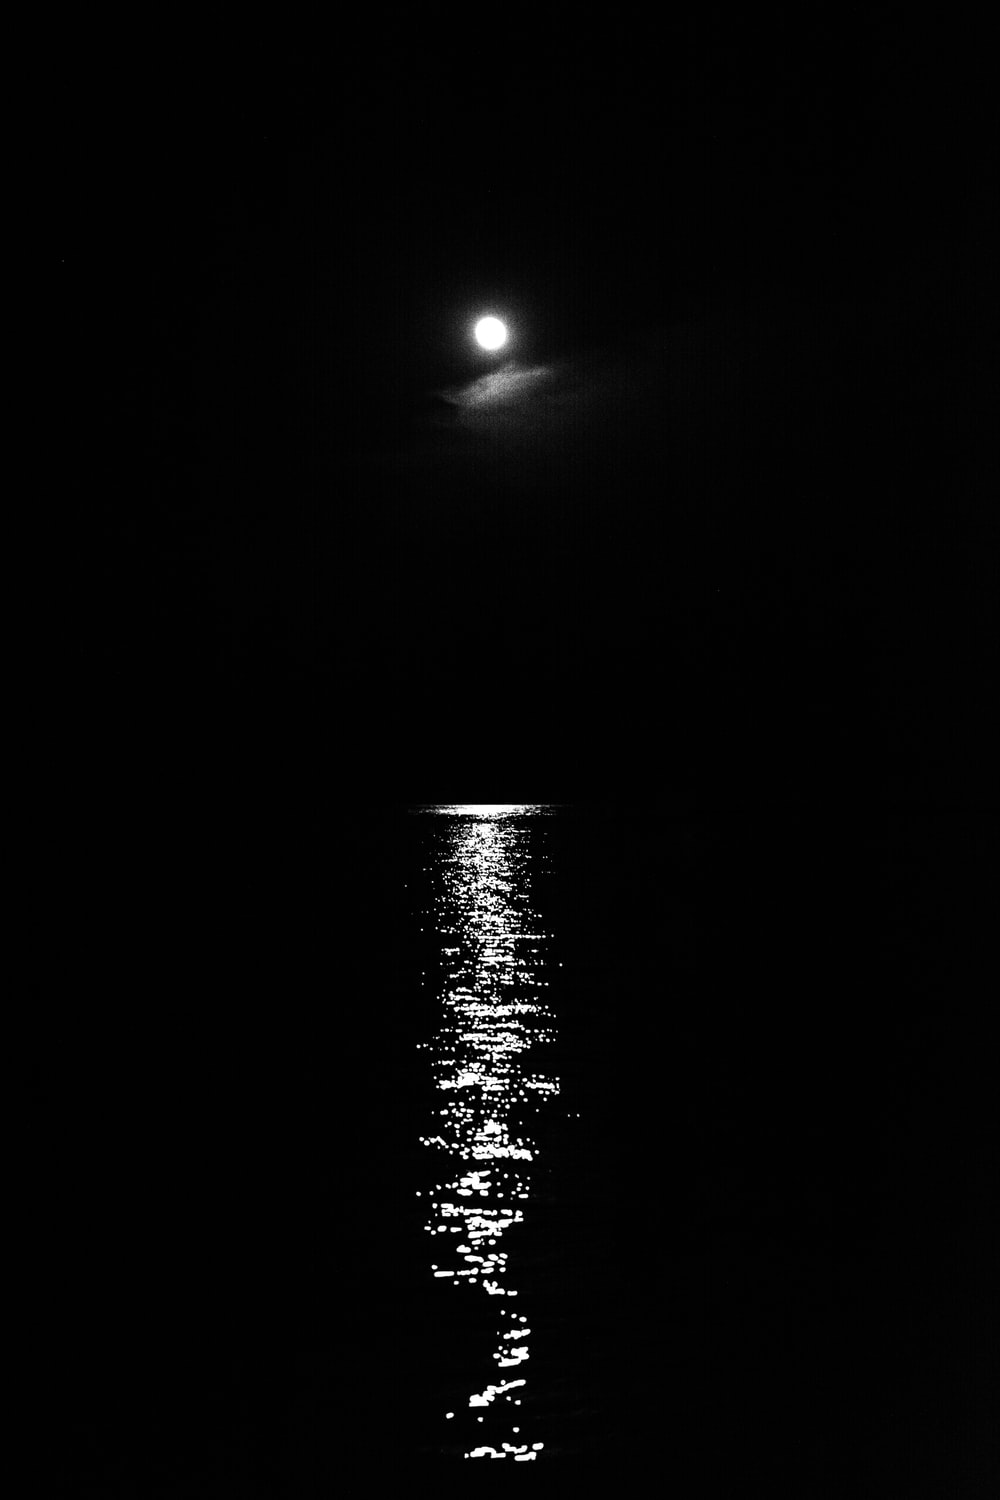 moon above body of water